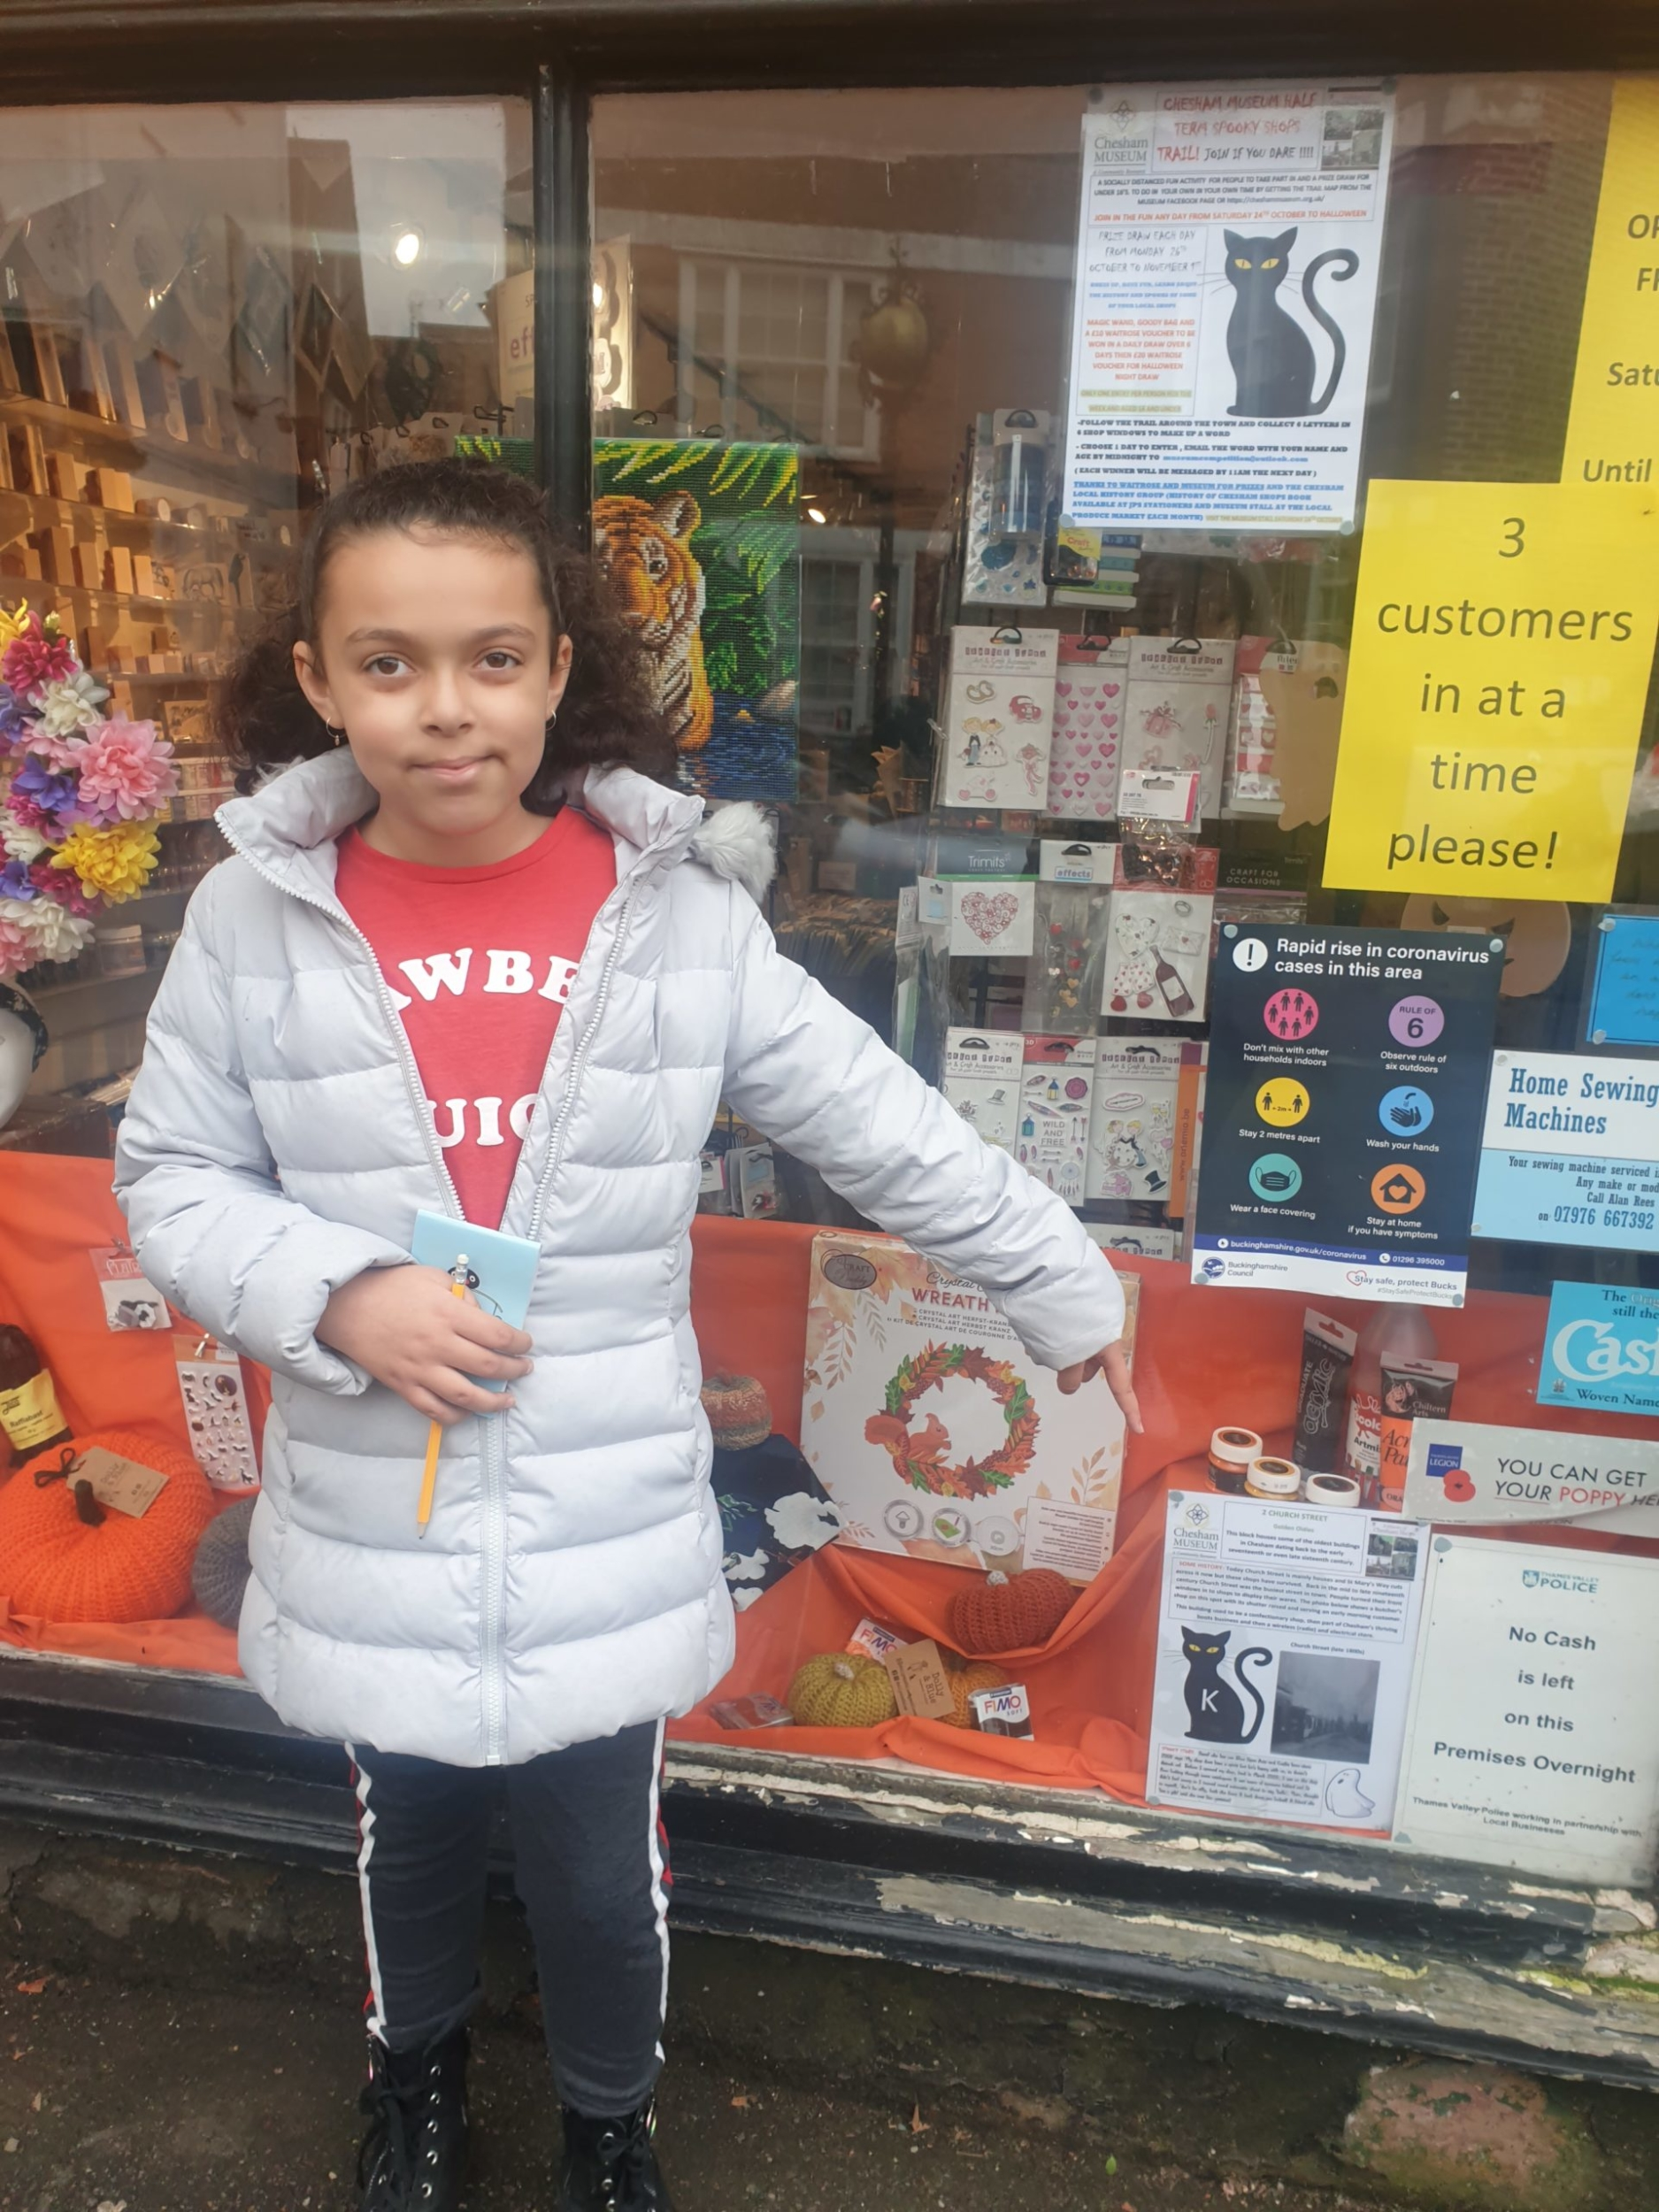 Monet finds the letter K in shop window